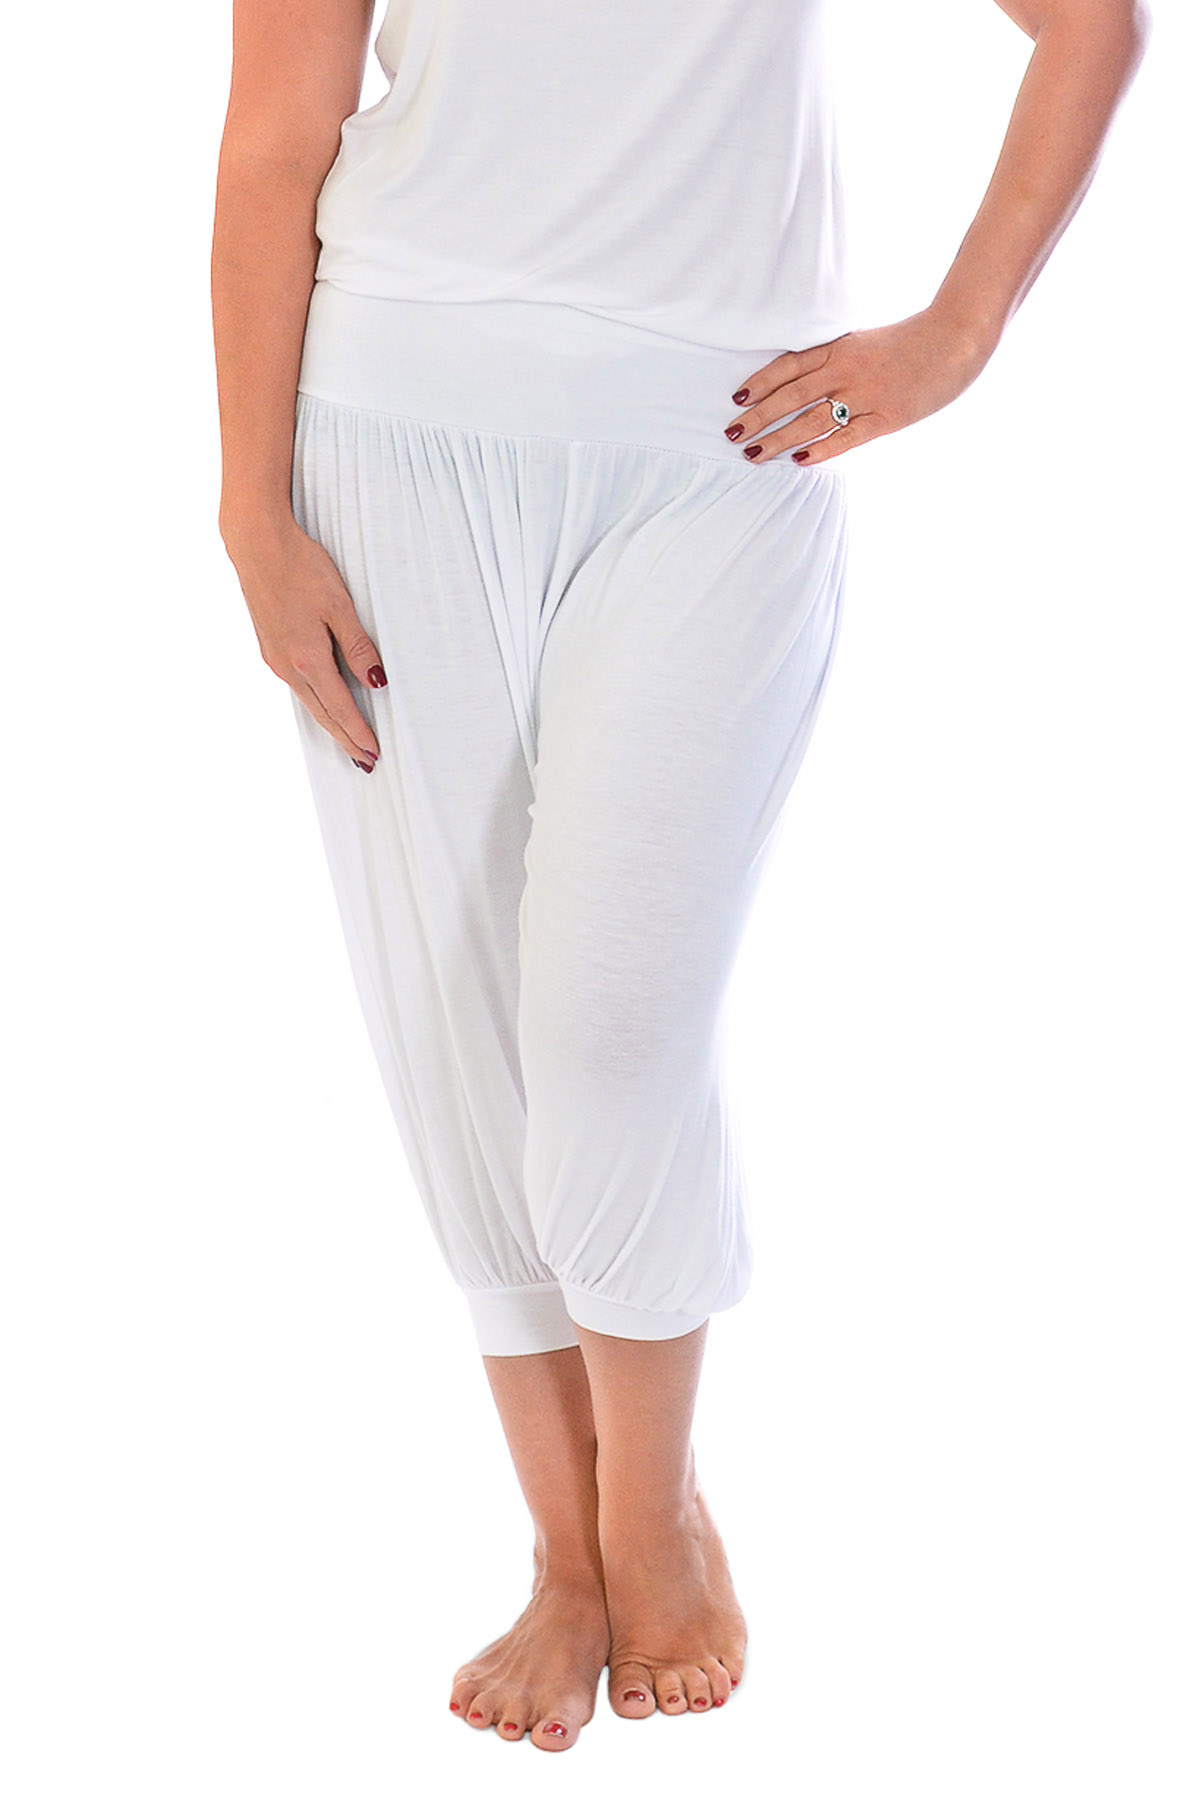 New Womens Plus Size Harem Trouser Ladies Cropped Ali Baba Yoga Plain Nouvelle